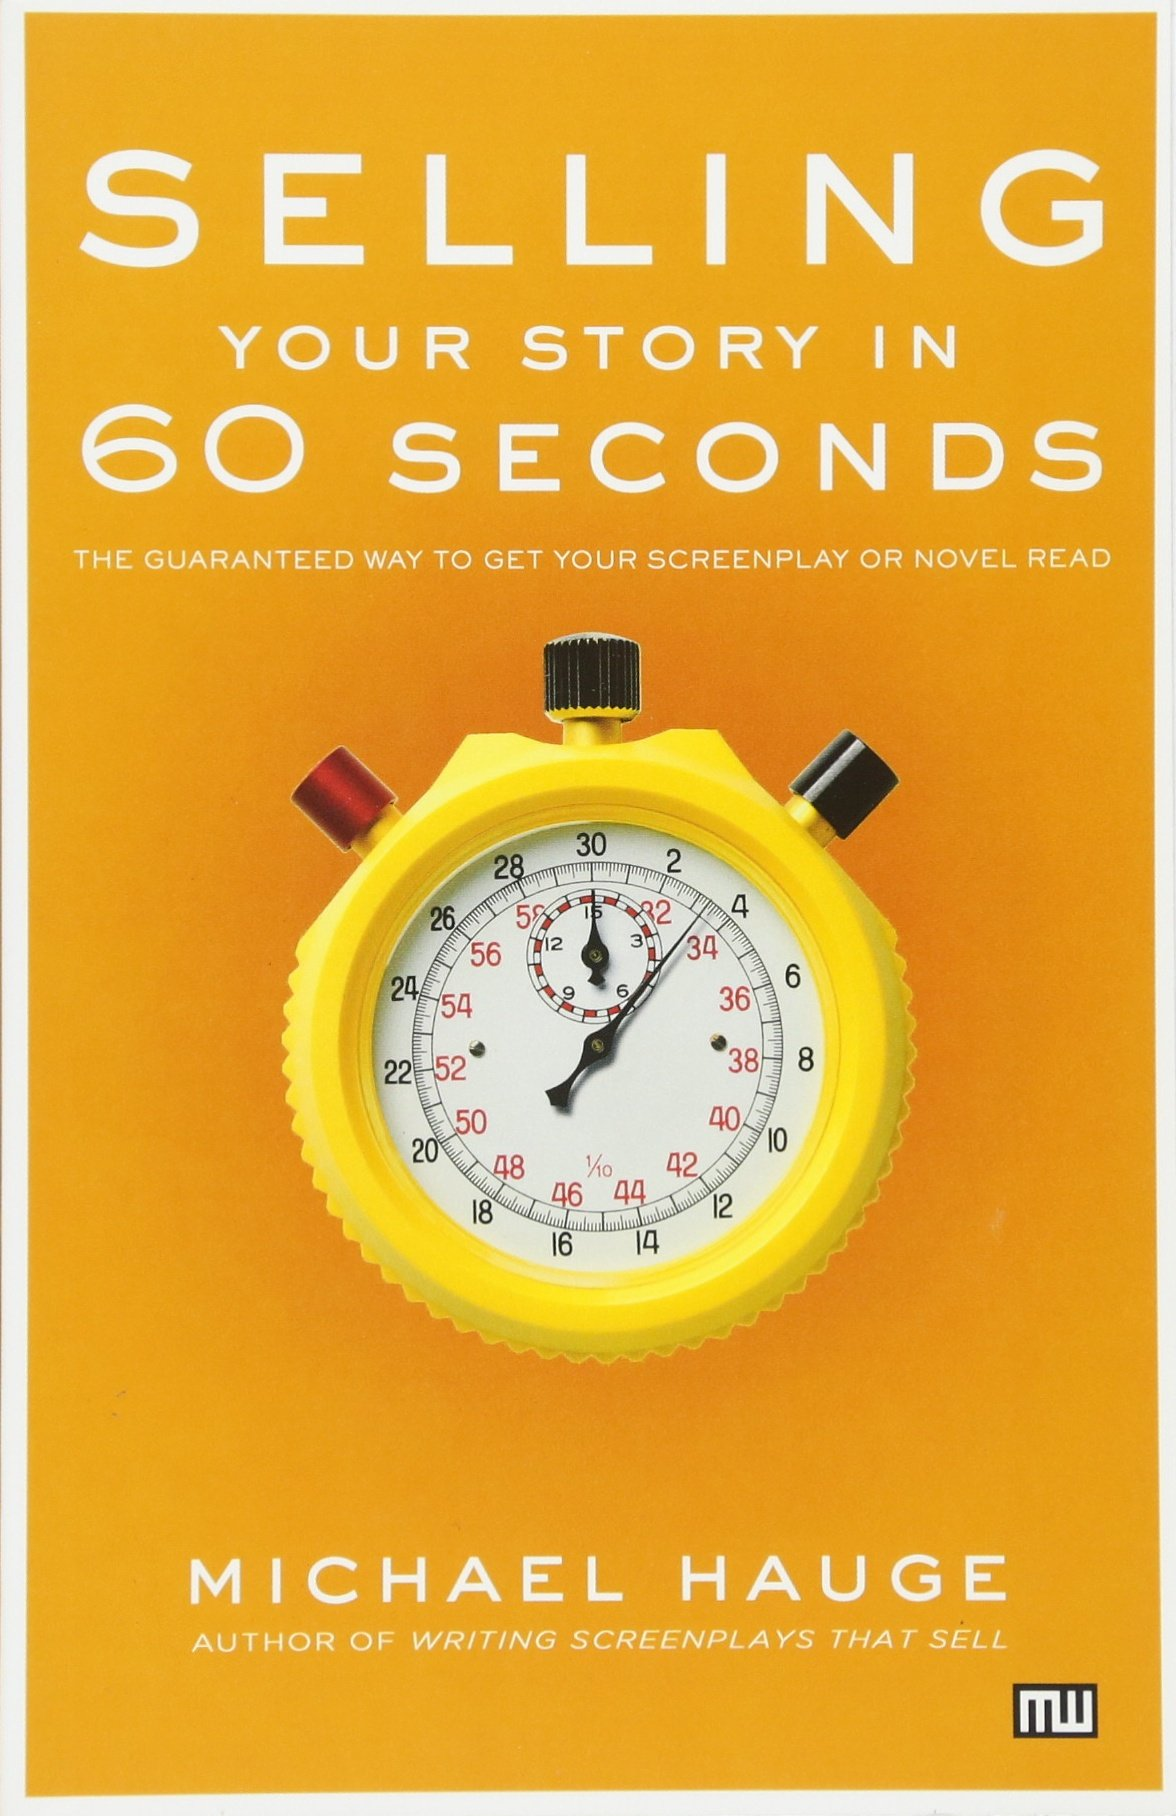 Selling Your Story in 60 Seconds: The Guaranteed Way to Get